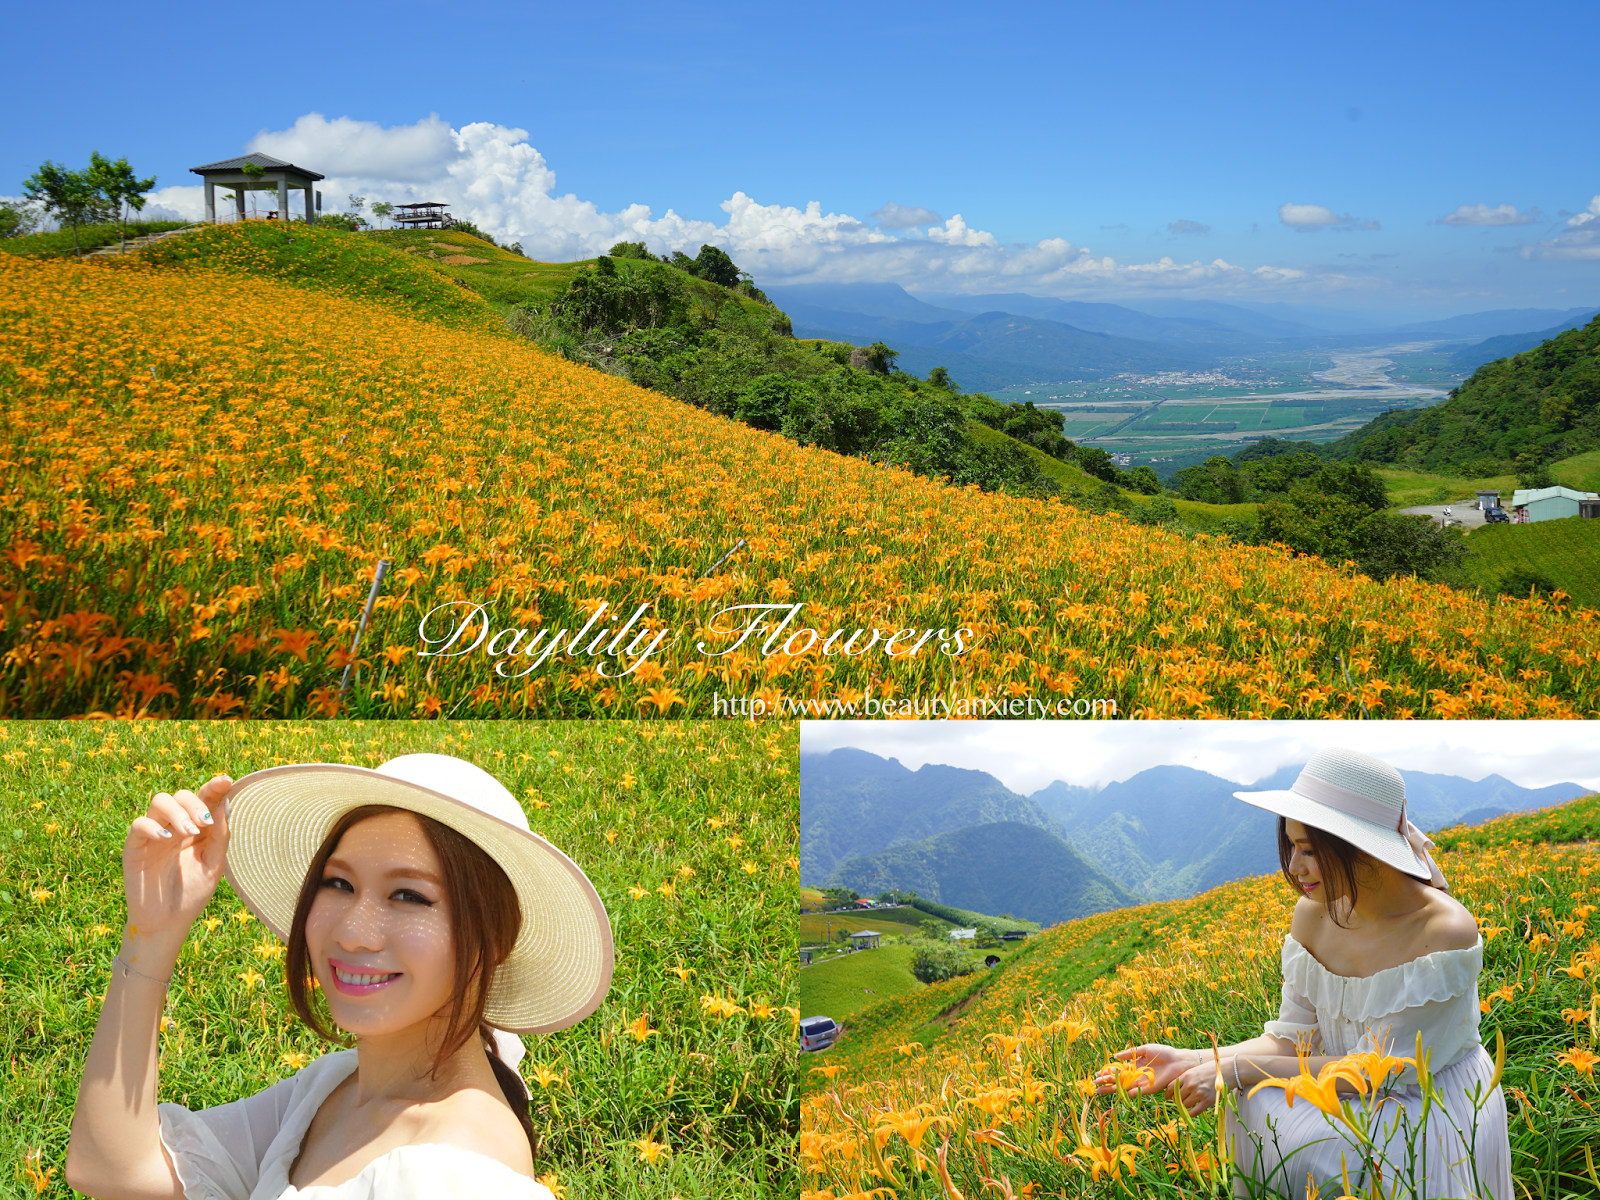 collage2-beautyanxiety.com-hualien-travel-liushidan-mountain-daylily-flowers